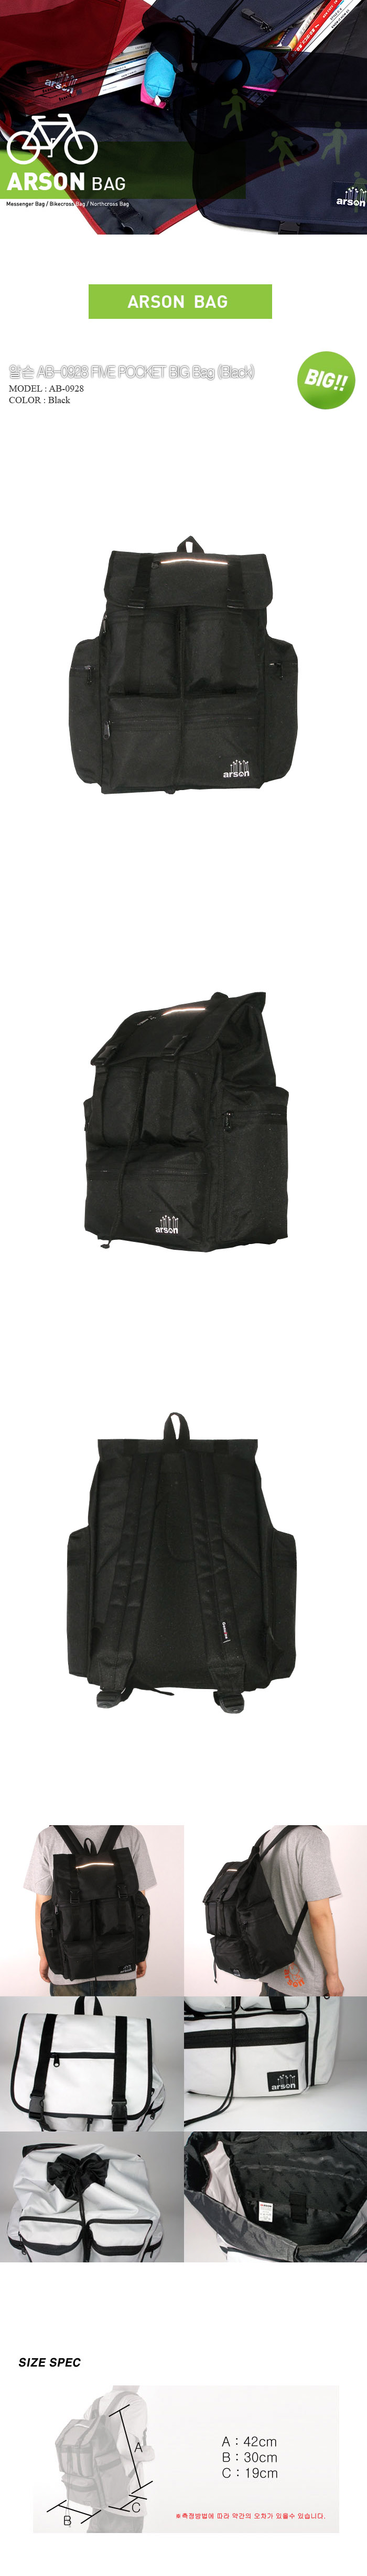 [ ARSON ] AB-0928 (Black)/Backpack School Bag